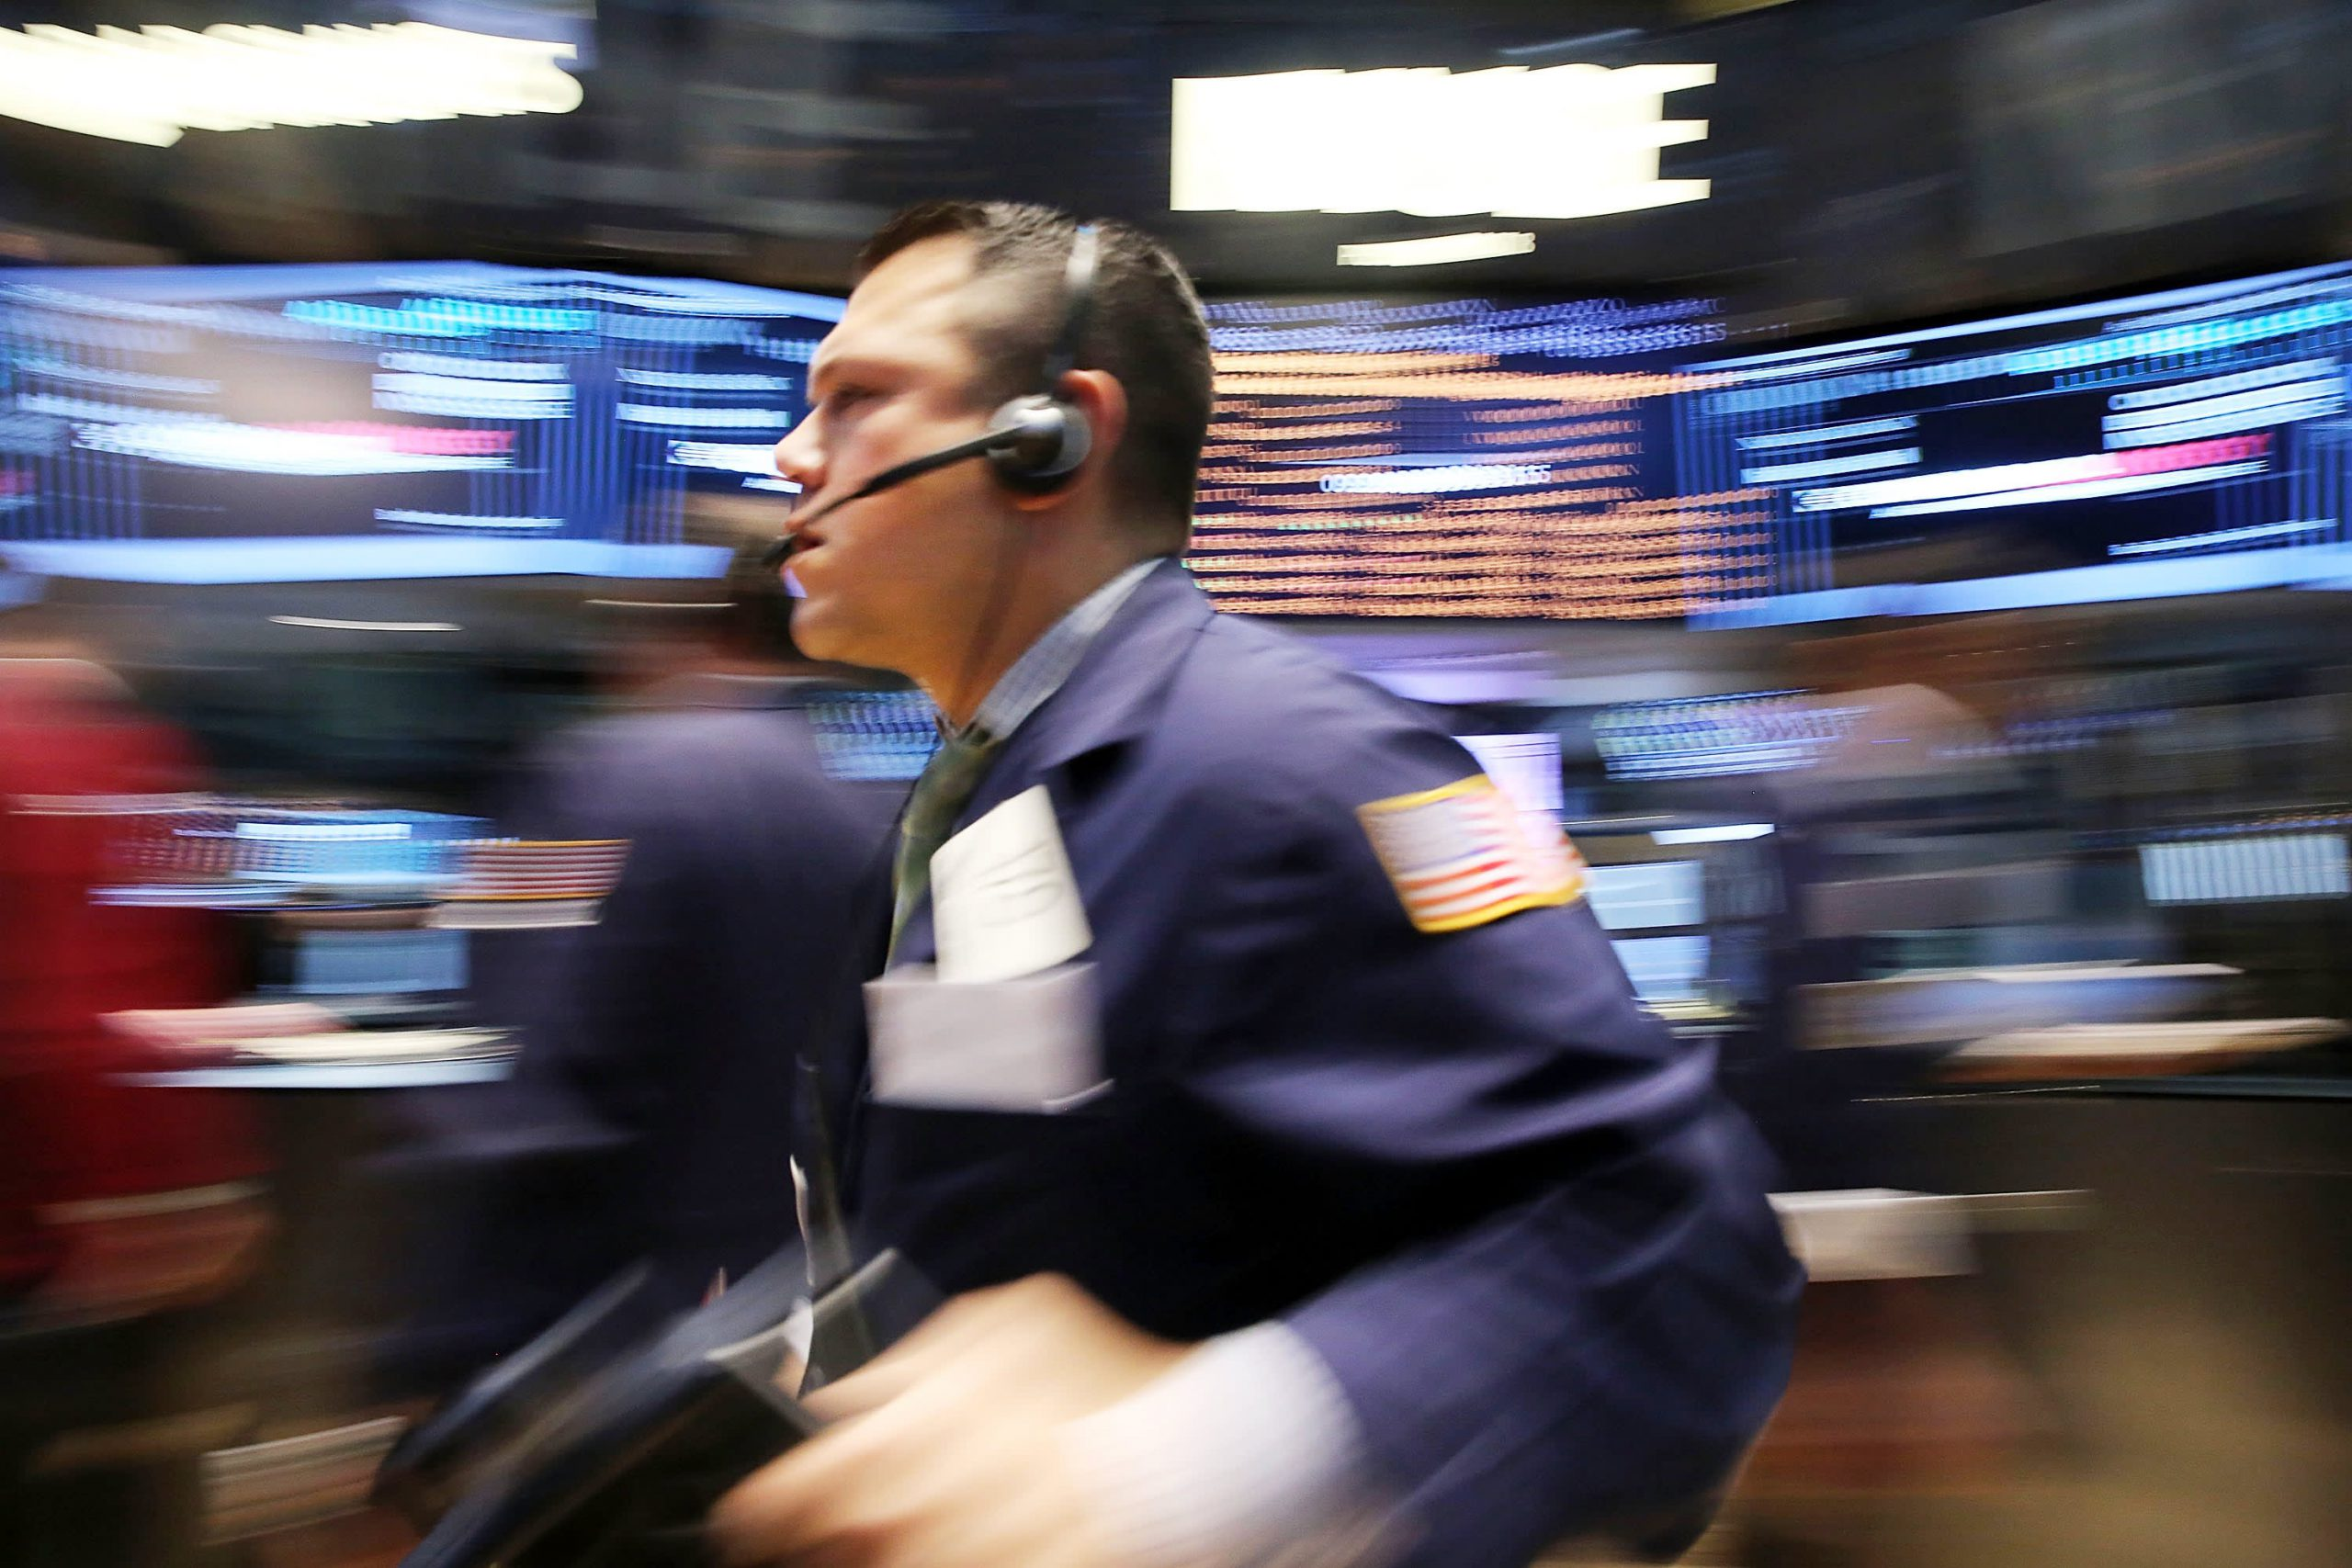 High-speed traders cost regular investors almost $5 billion a year, study says